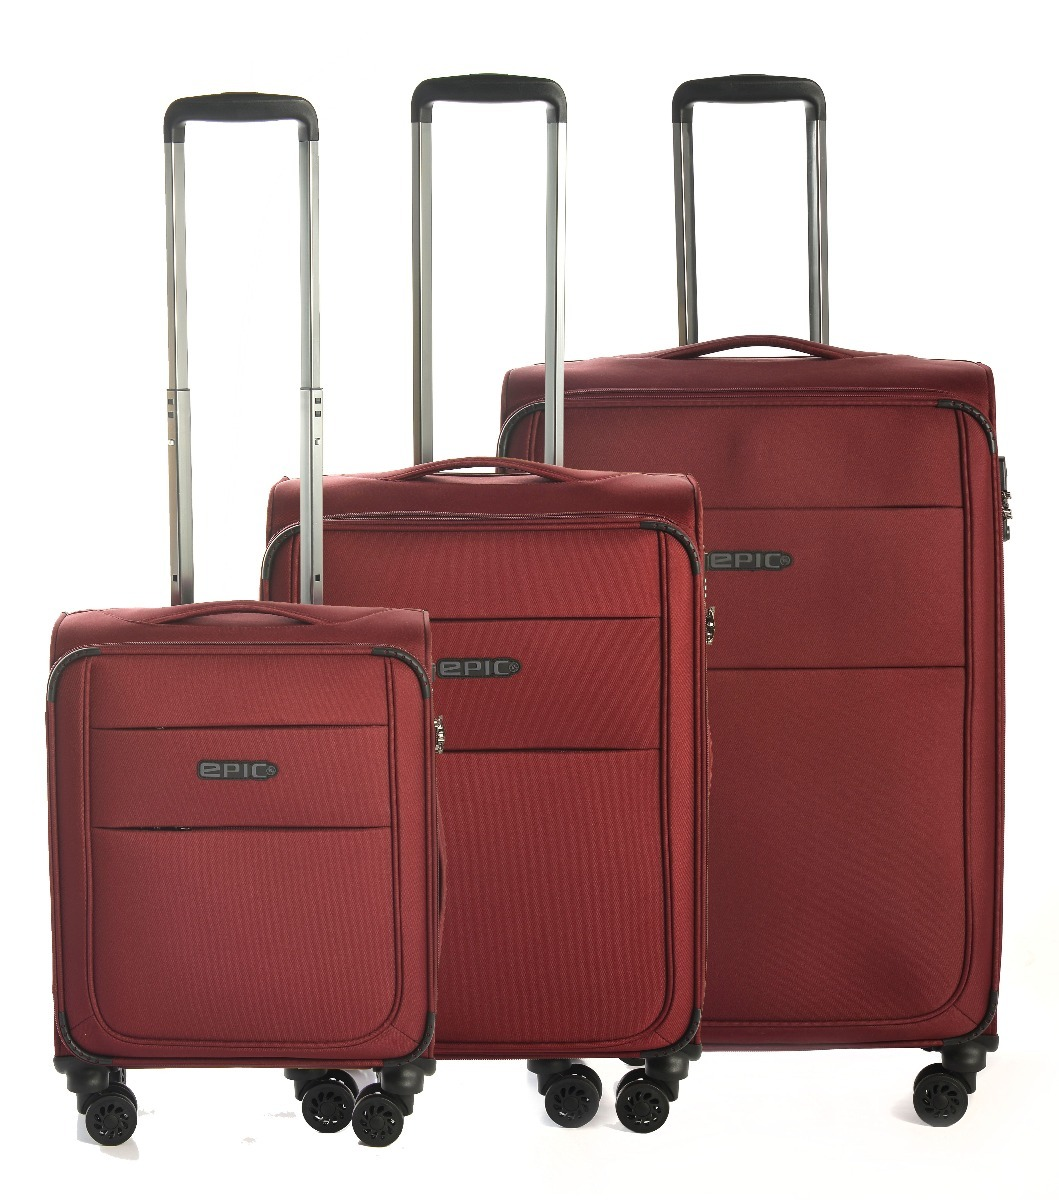 Epic Discovery Ultra 4X 3 set - 75cm + 65cm + 55cm - 4 hjul-Red